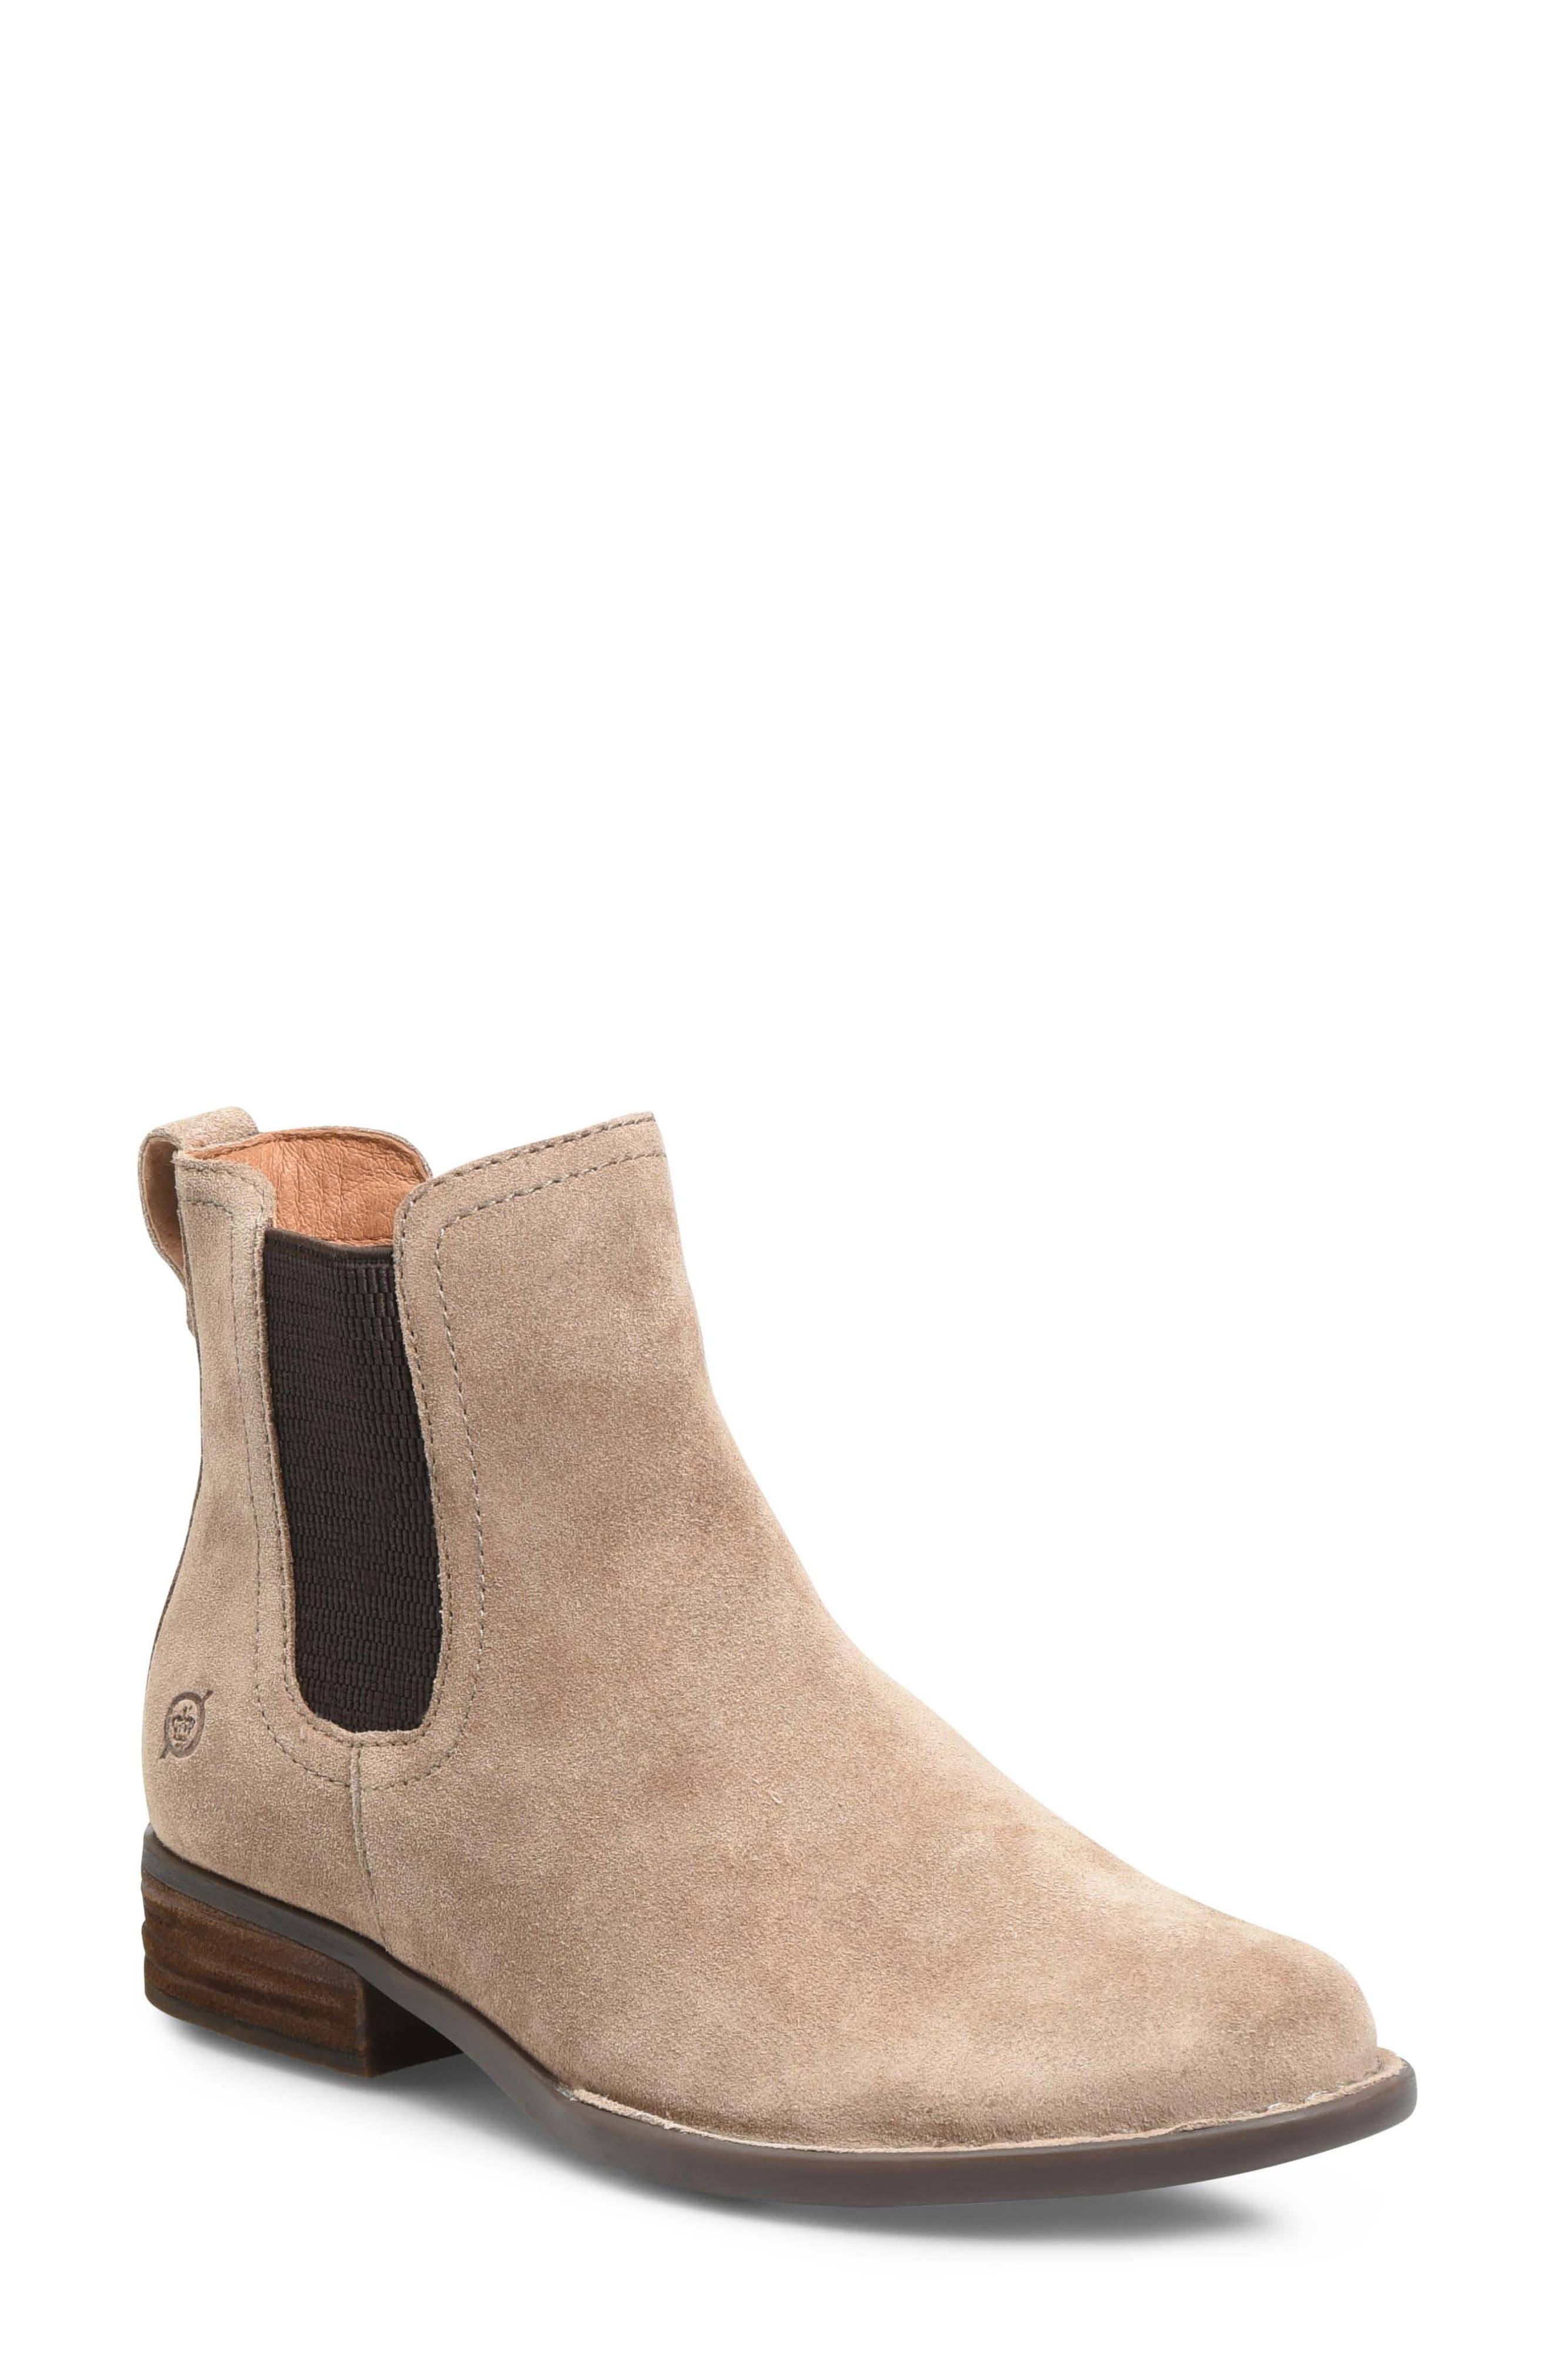 BØRN, Casco Chelsea Boot, Main thumbnail 1, color, DARK TAUPE SUEDE